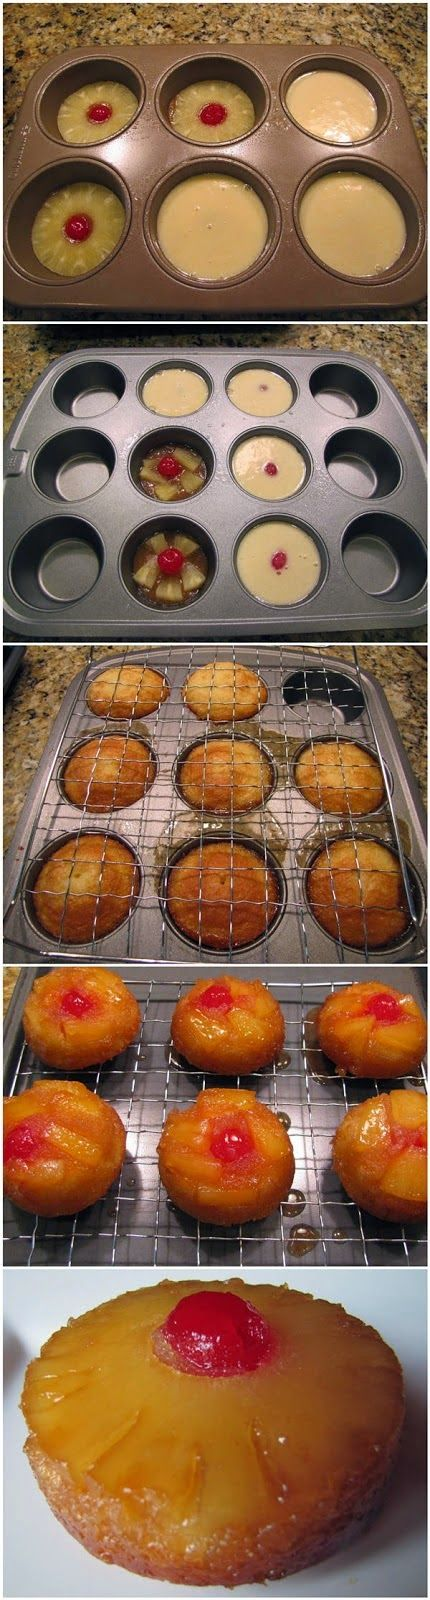 Mini Pineapple Upside Down Cakes ~ Freshdreamer